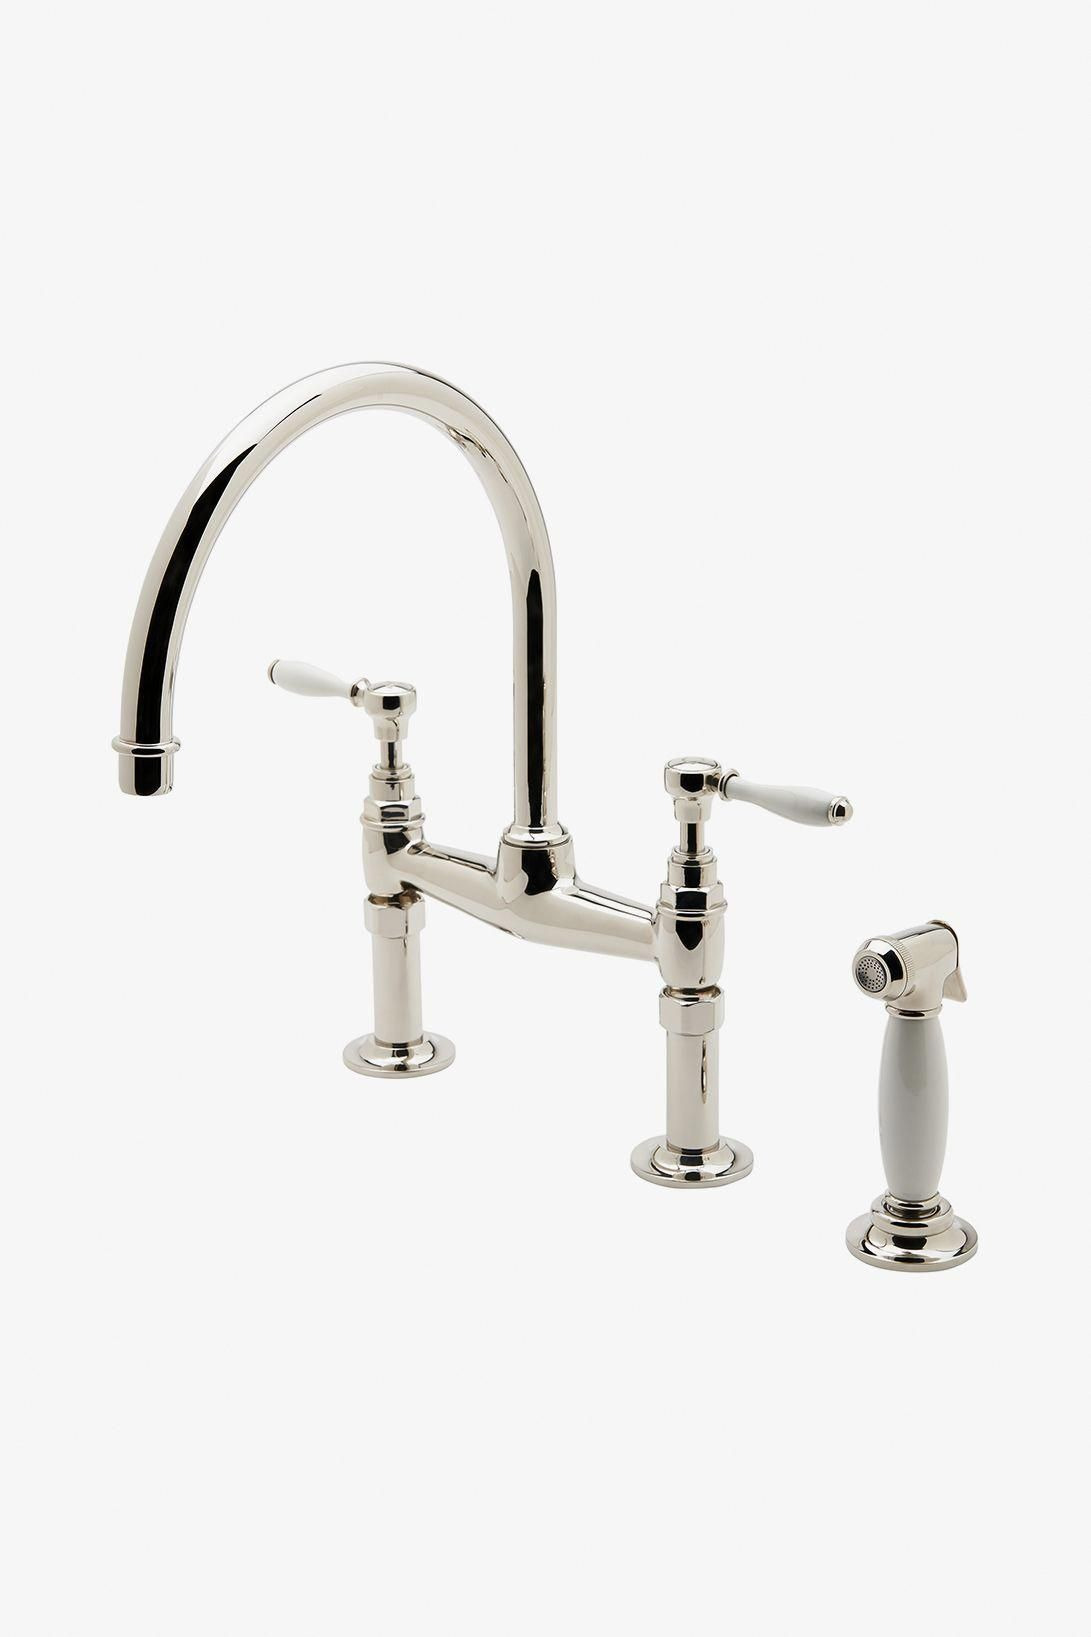 Decorative Bathroom Faucets Lovely 8 Exceptional Decorative Objects to Offer for the Home